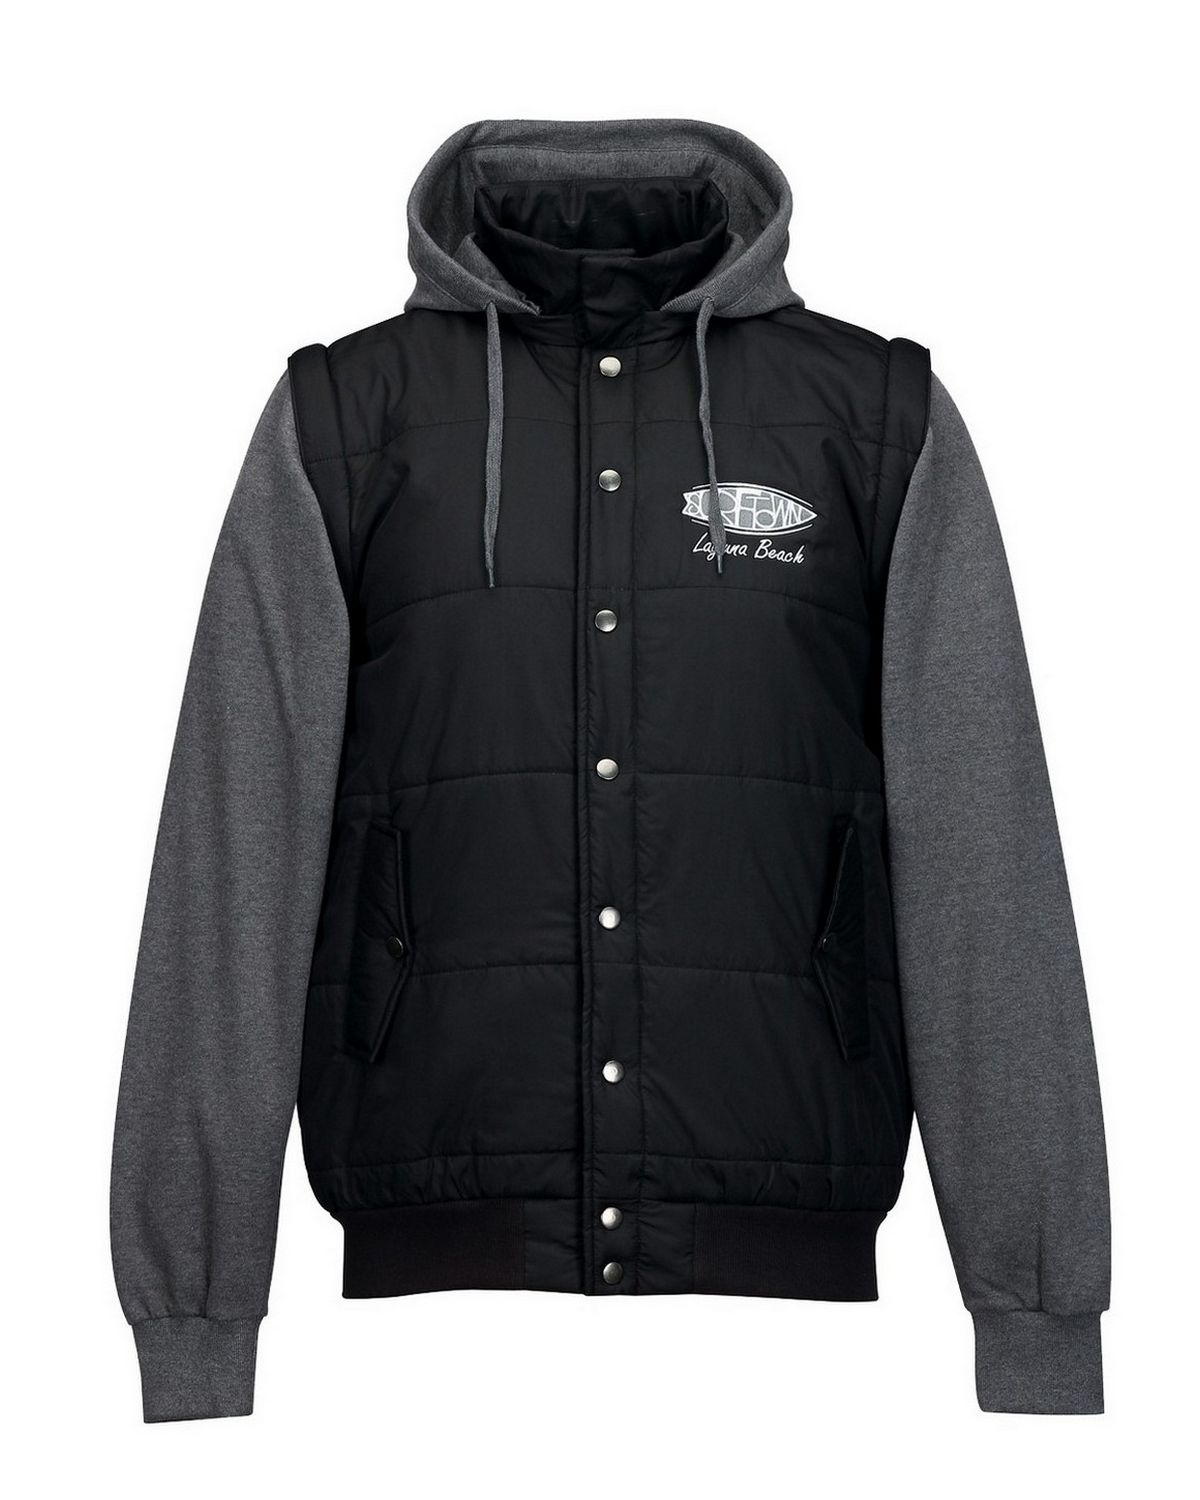 Tri-Mountain J8150 Shawn Hoody - Black/Charcoal - M J8150